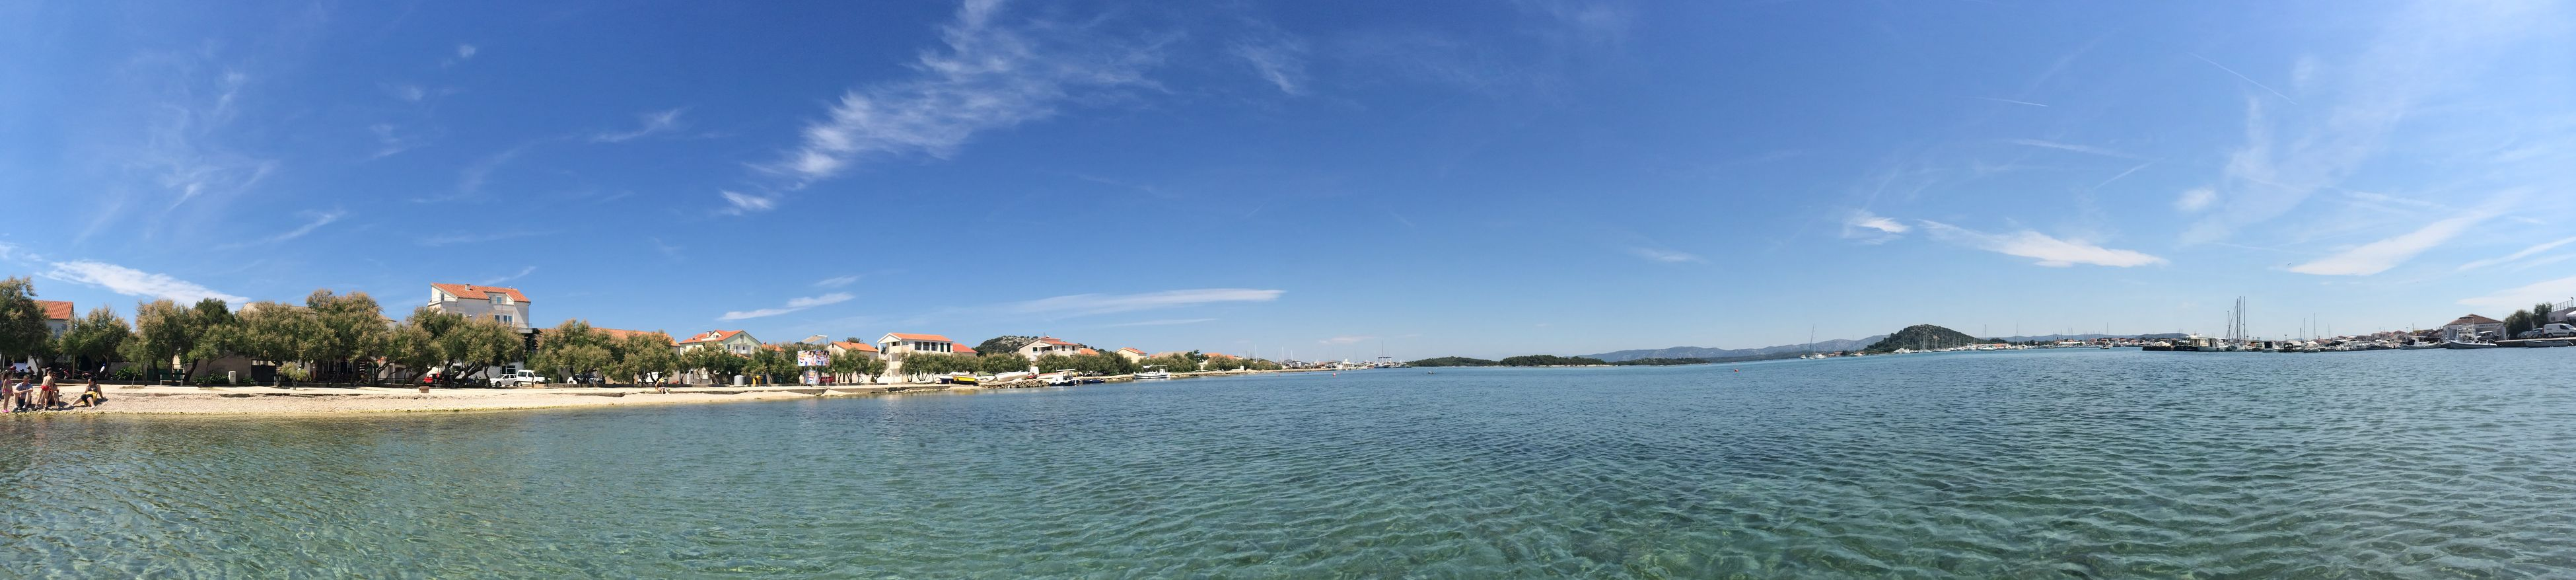 Croatia Strand Summertime Holiday MyPhotography Panorama Iphonegraphy 📱💕